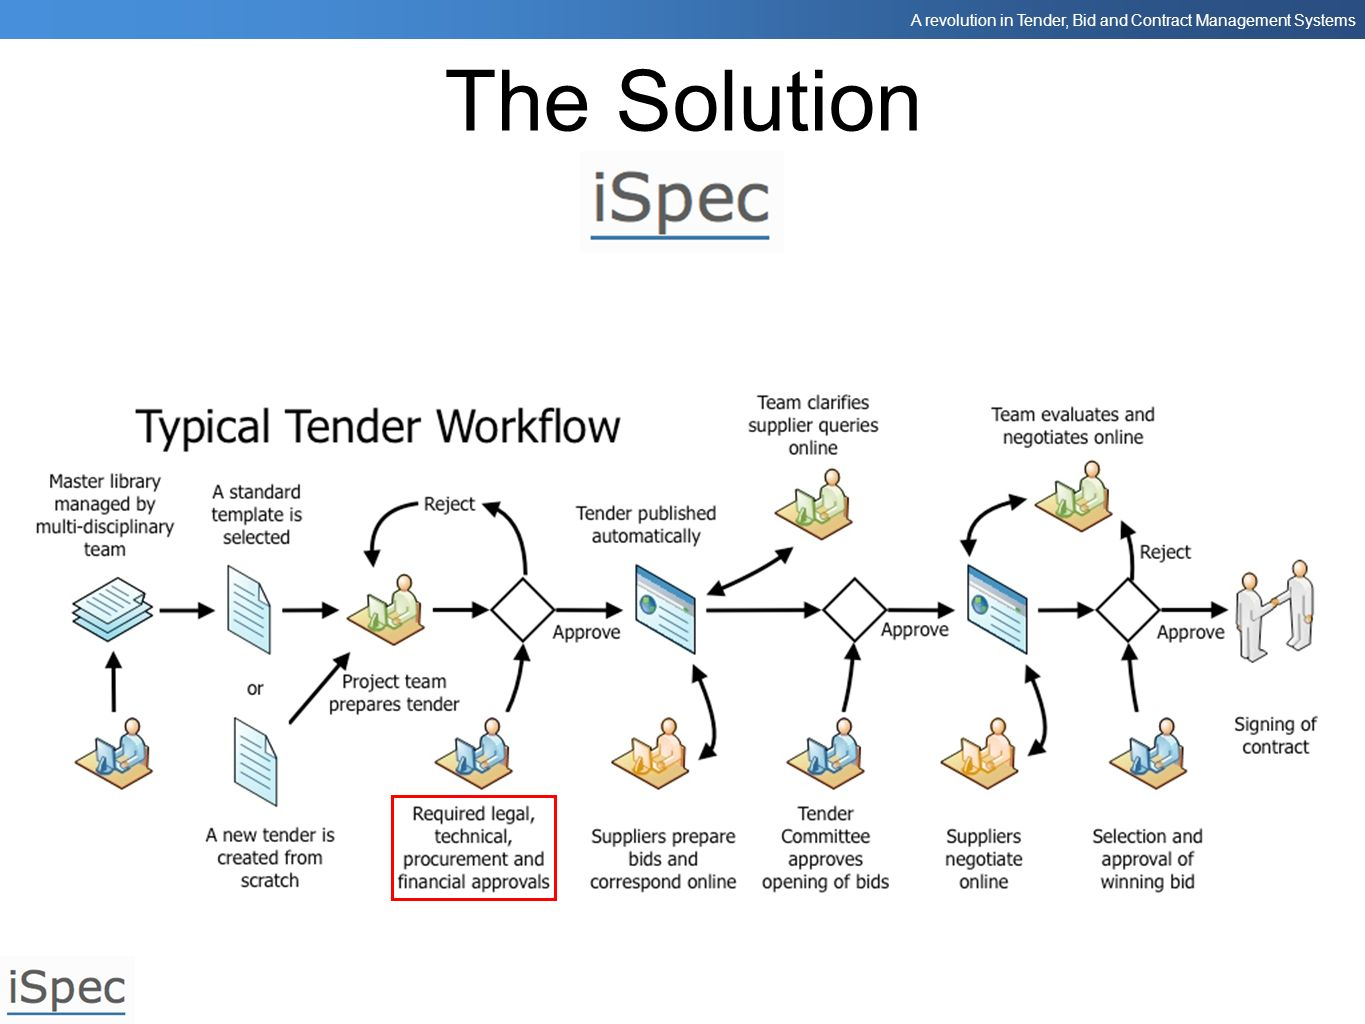 The Solution Now we need to obtain the required approvals depending on the type of tender and perhaps the value.